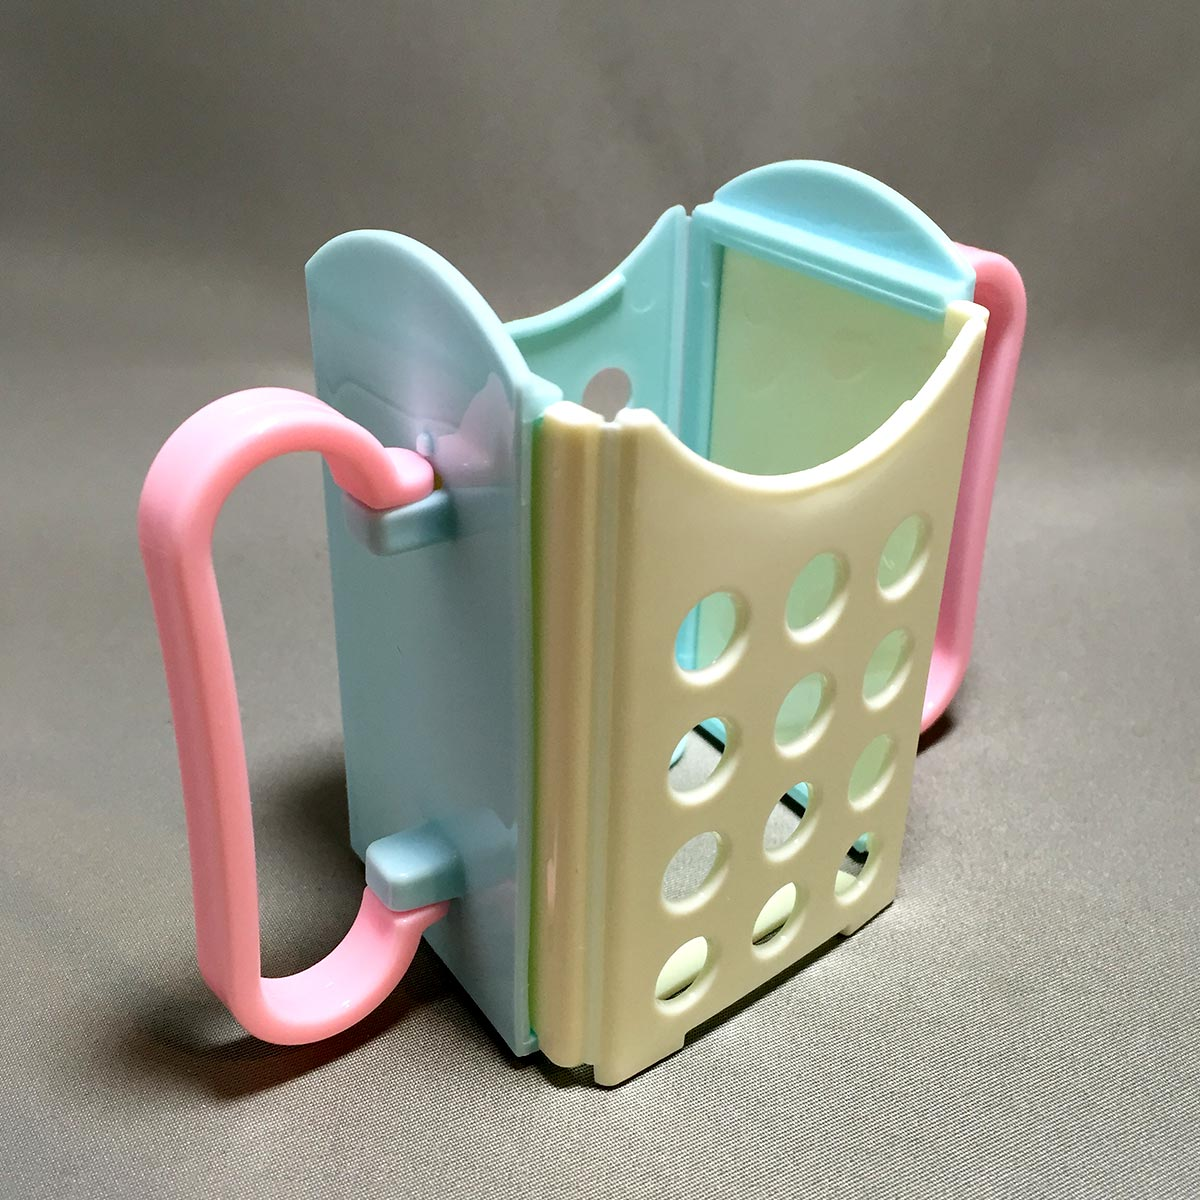 Folding Drink Box Holder - Opened